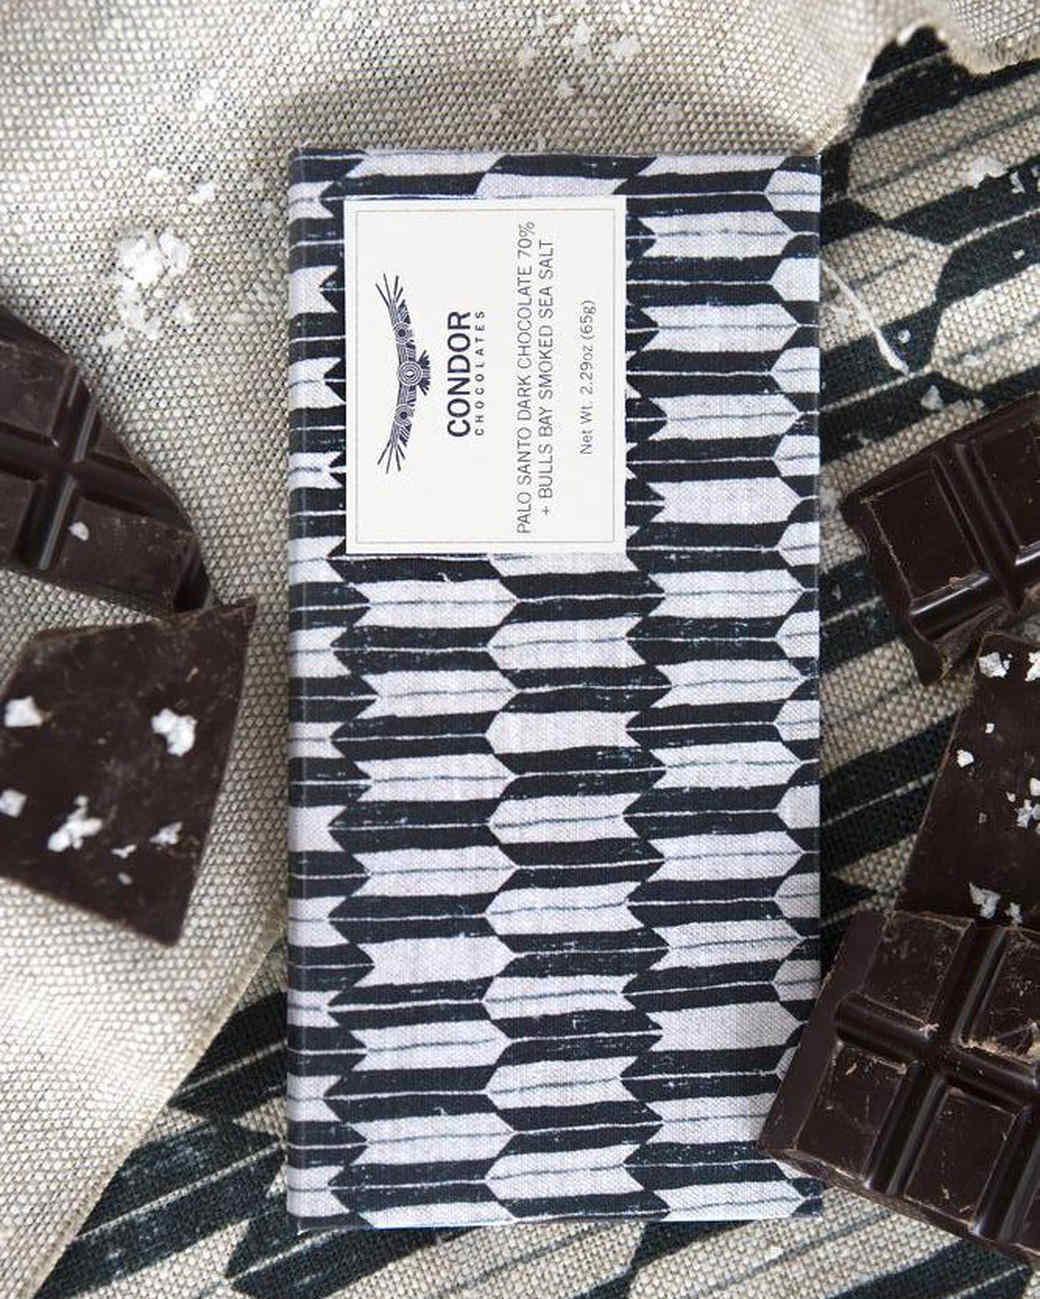 condor smoked salt chocolate